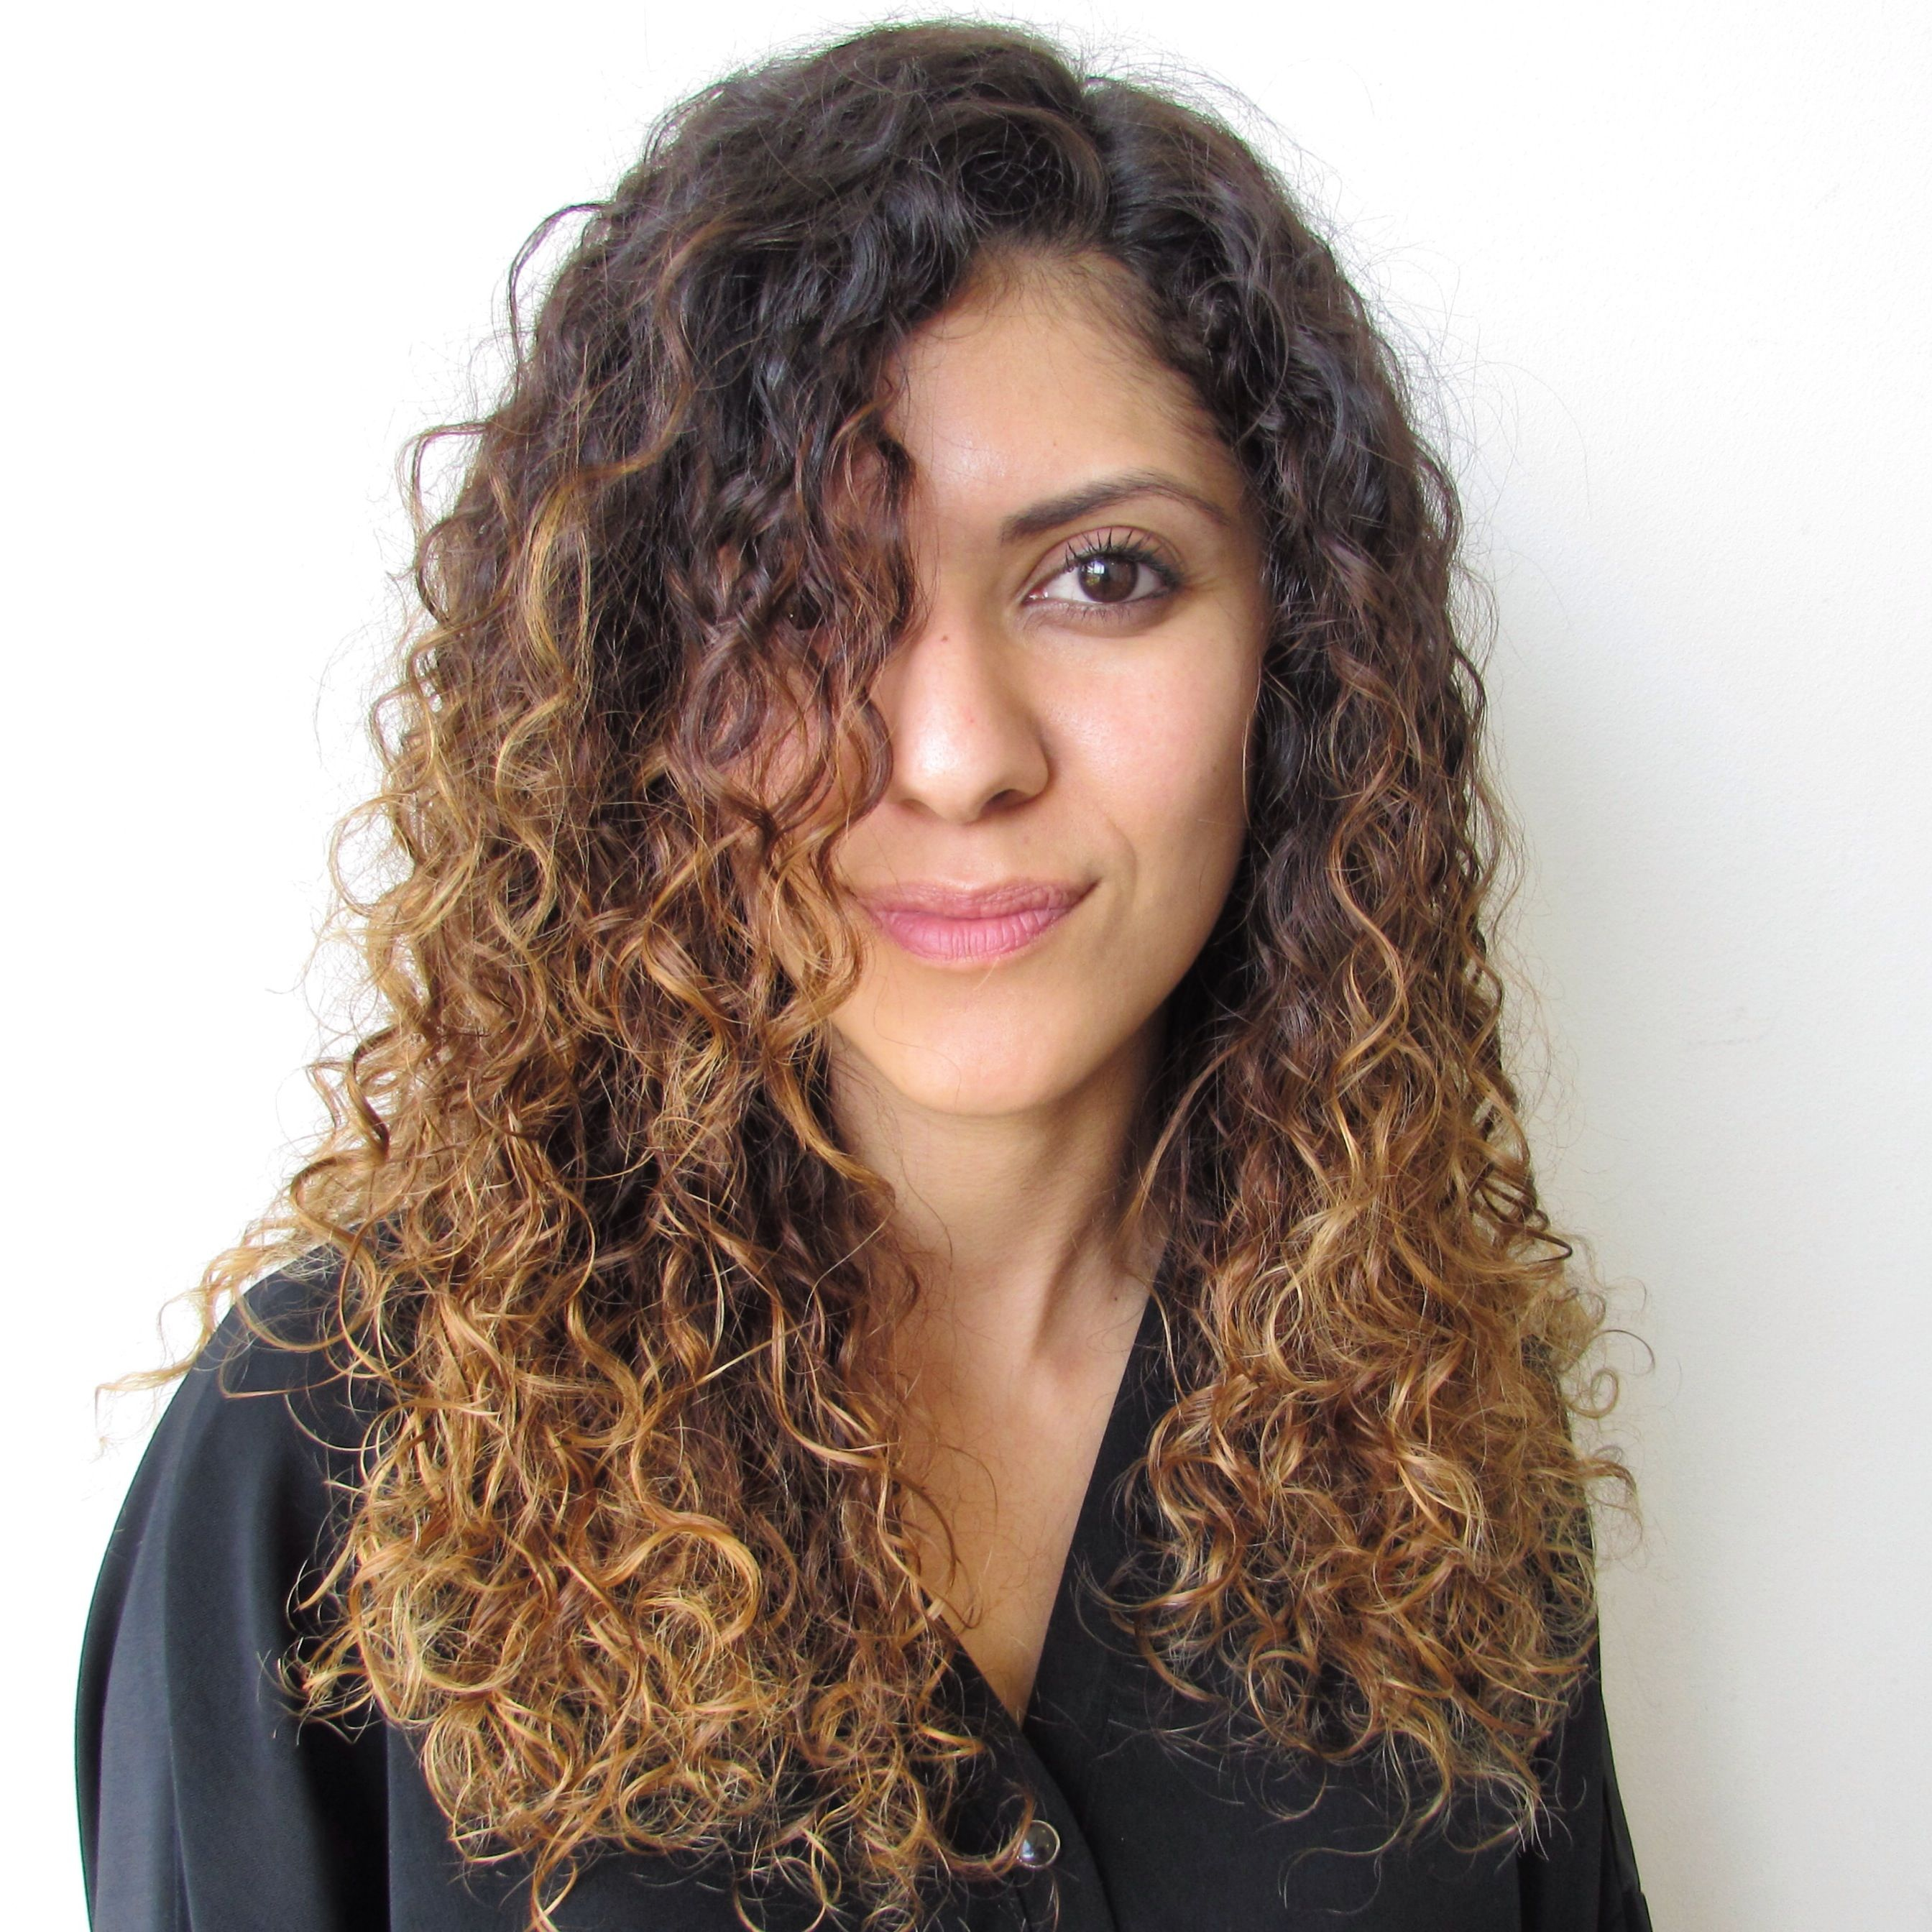 Ten Top Risks Of Attending Balayage Curly Hair Balayage Curly Hair